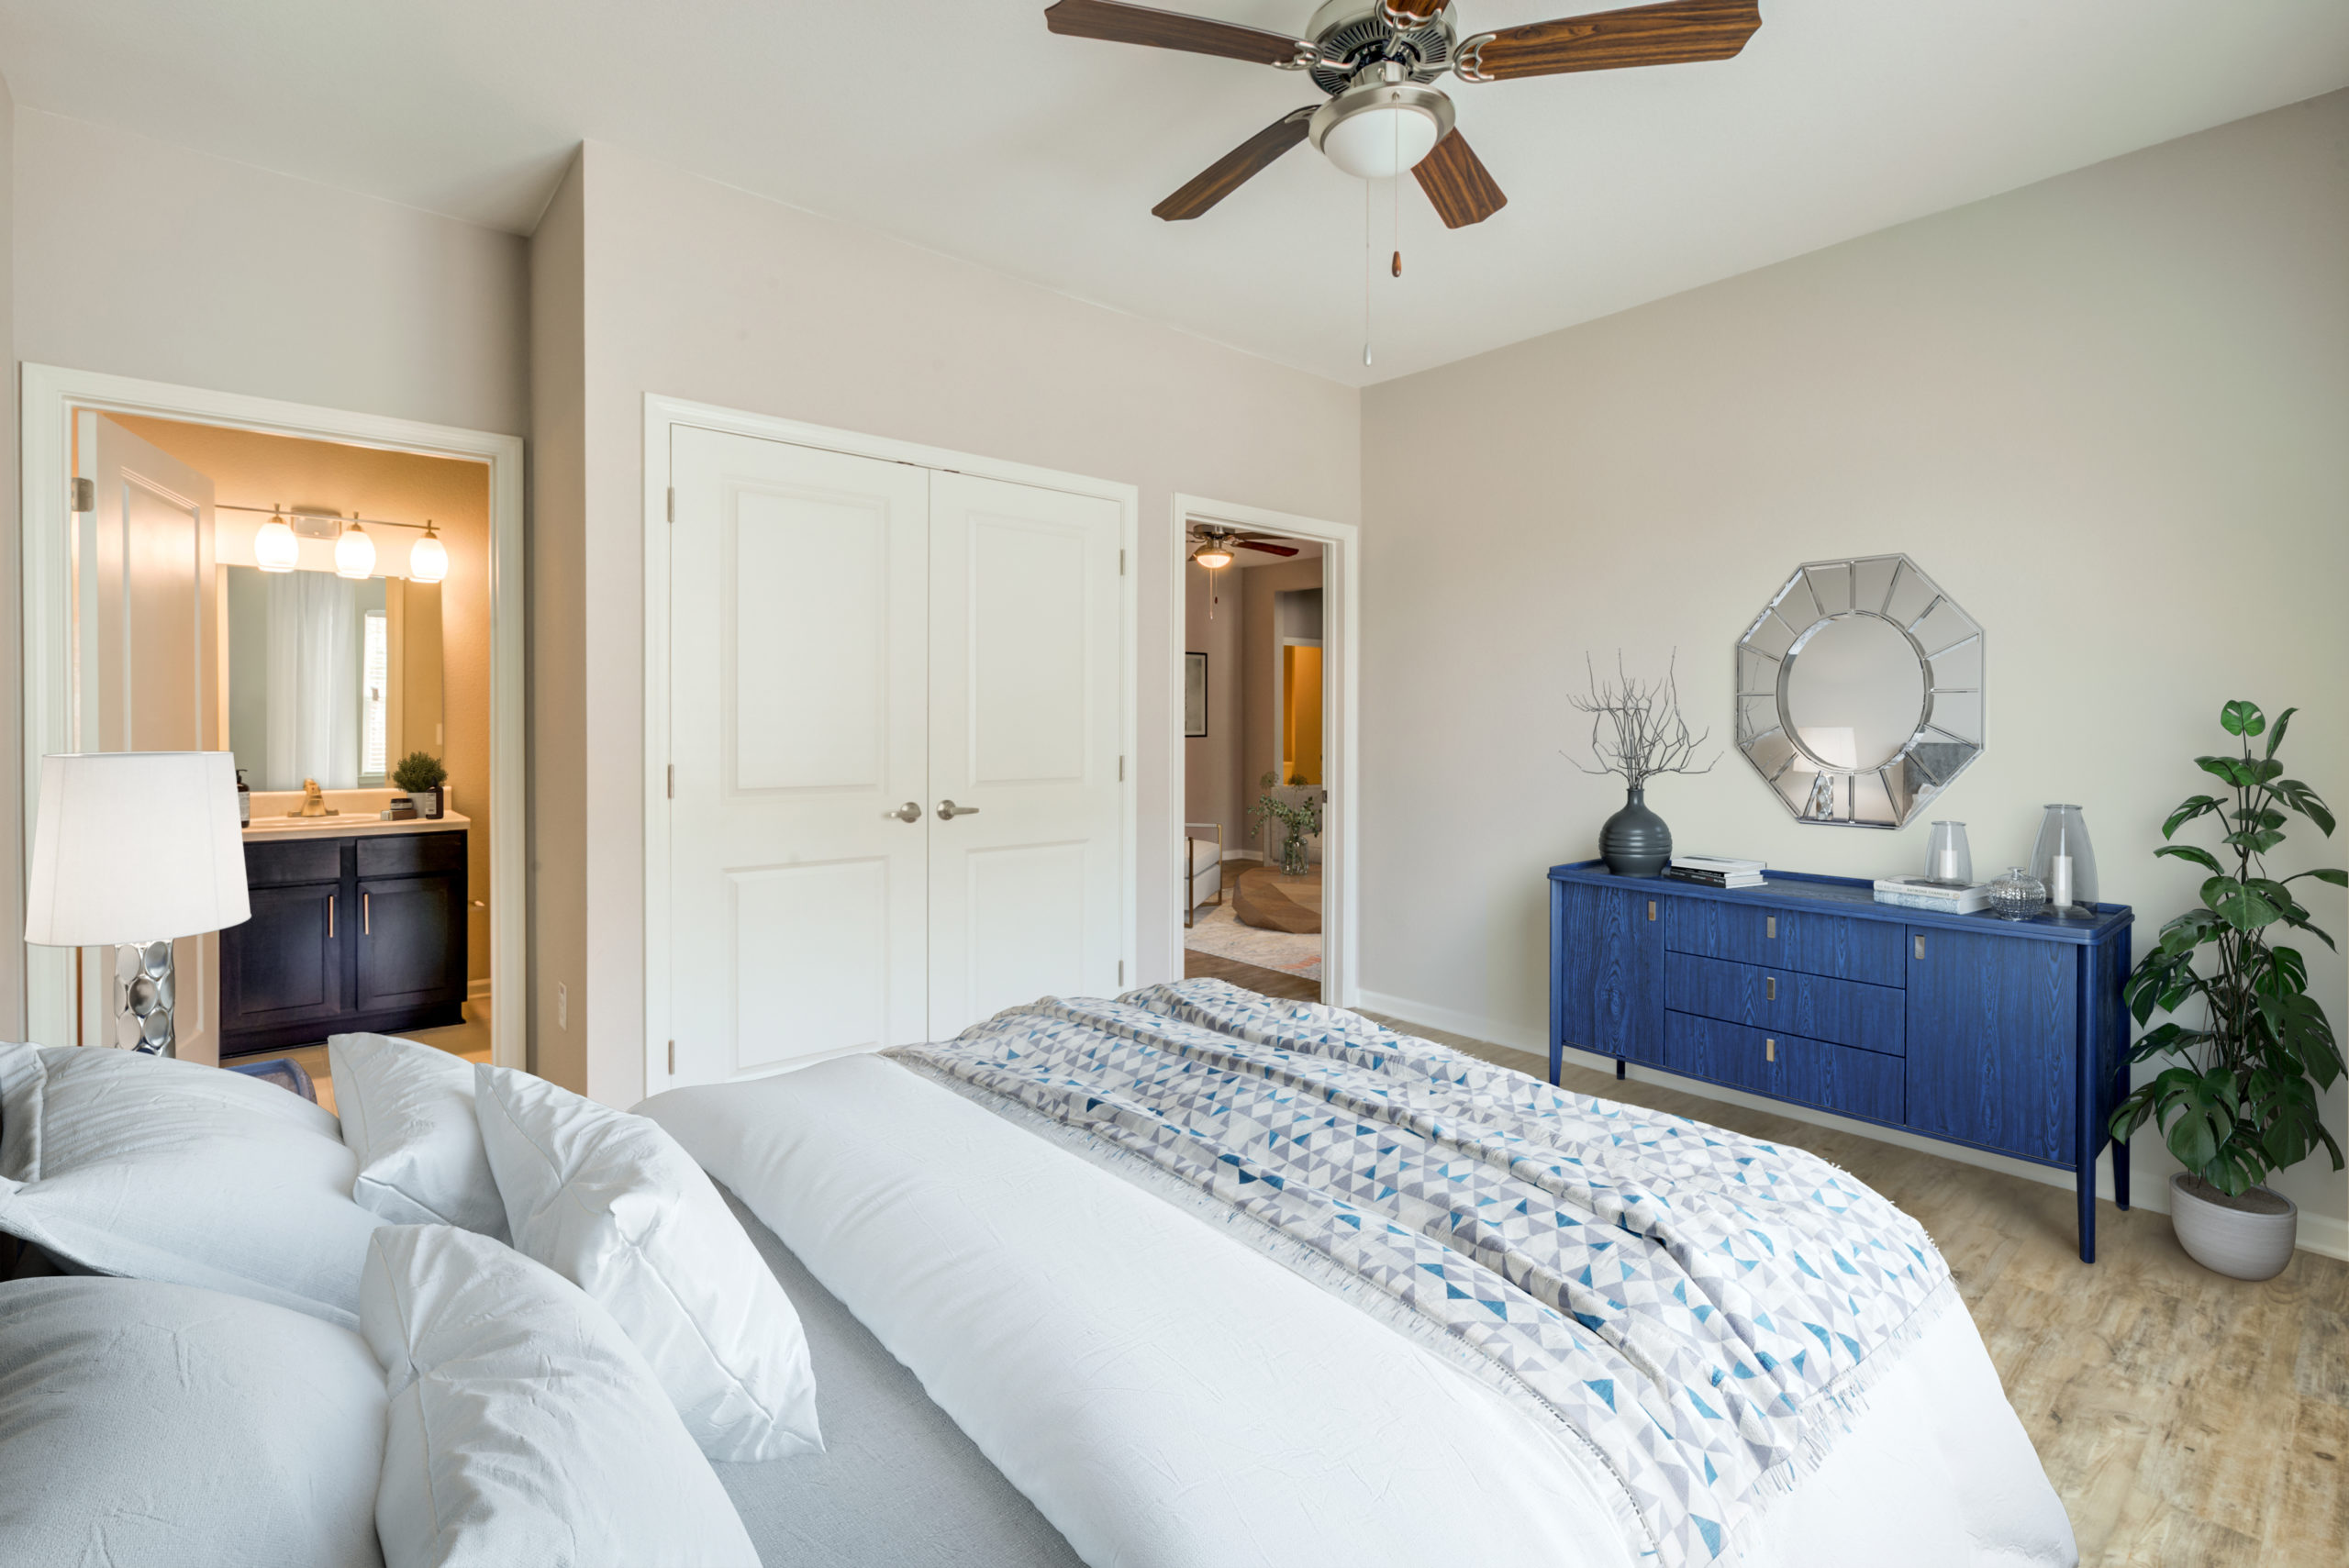 Bedroom at Goodnight Commons with carpet flooring, gray daybed, and wood desk.